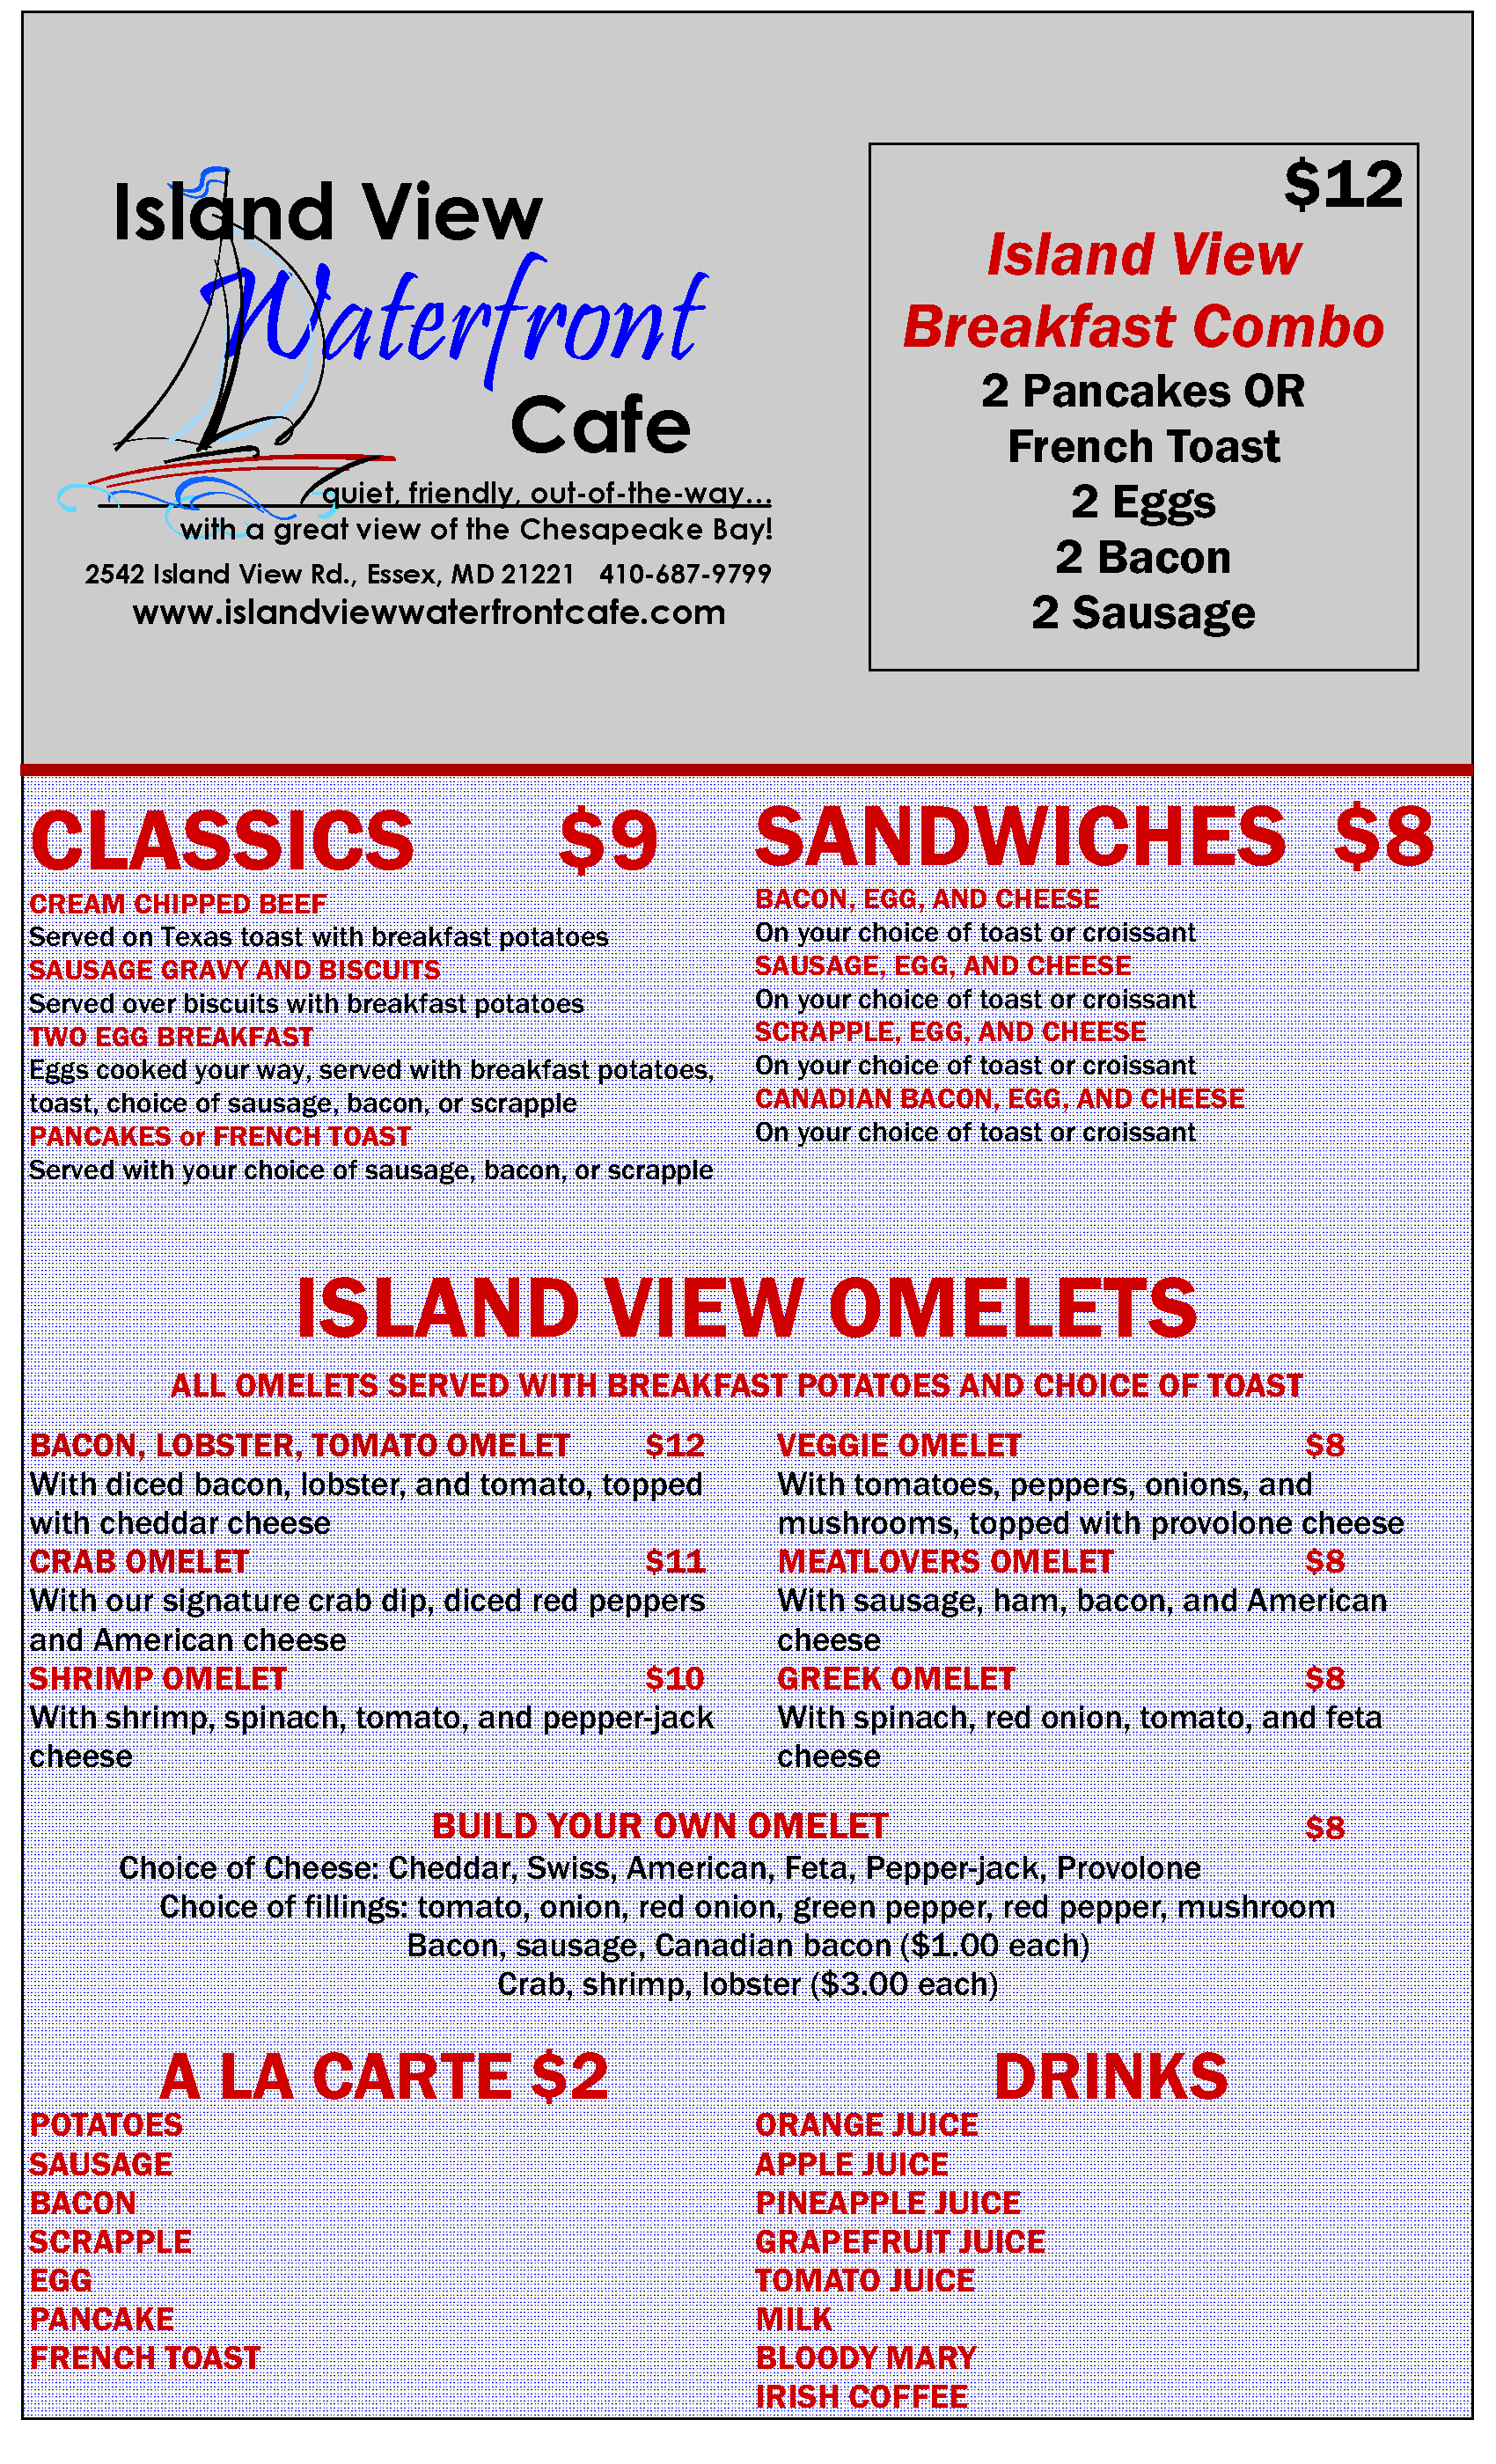 Island View Waterfront Cafe breakfast menu